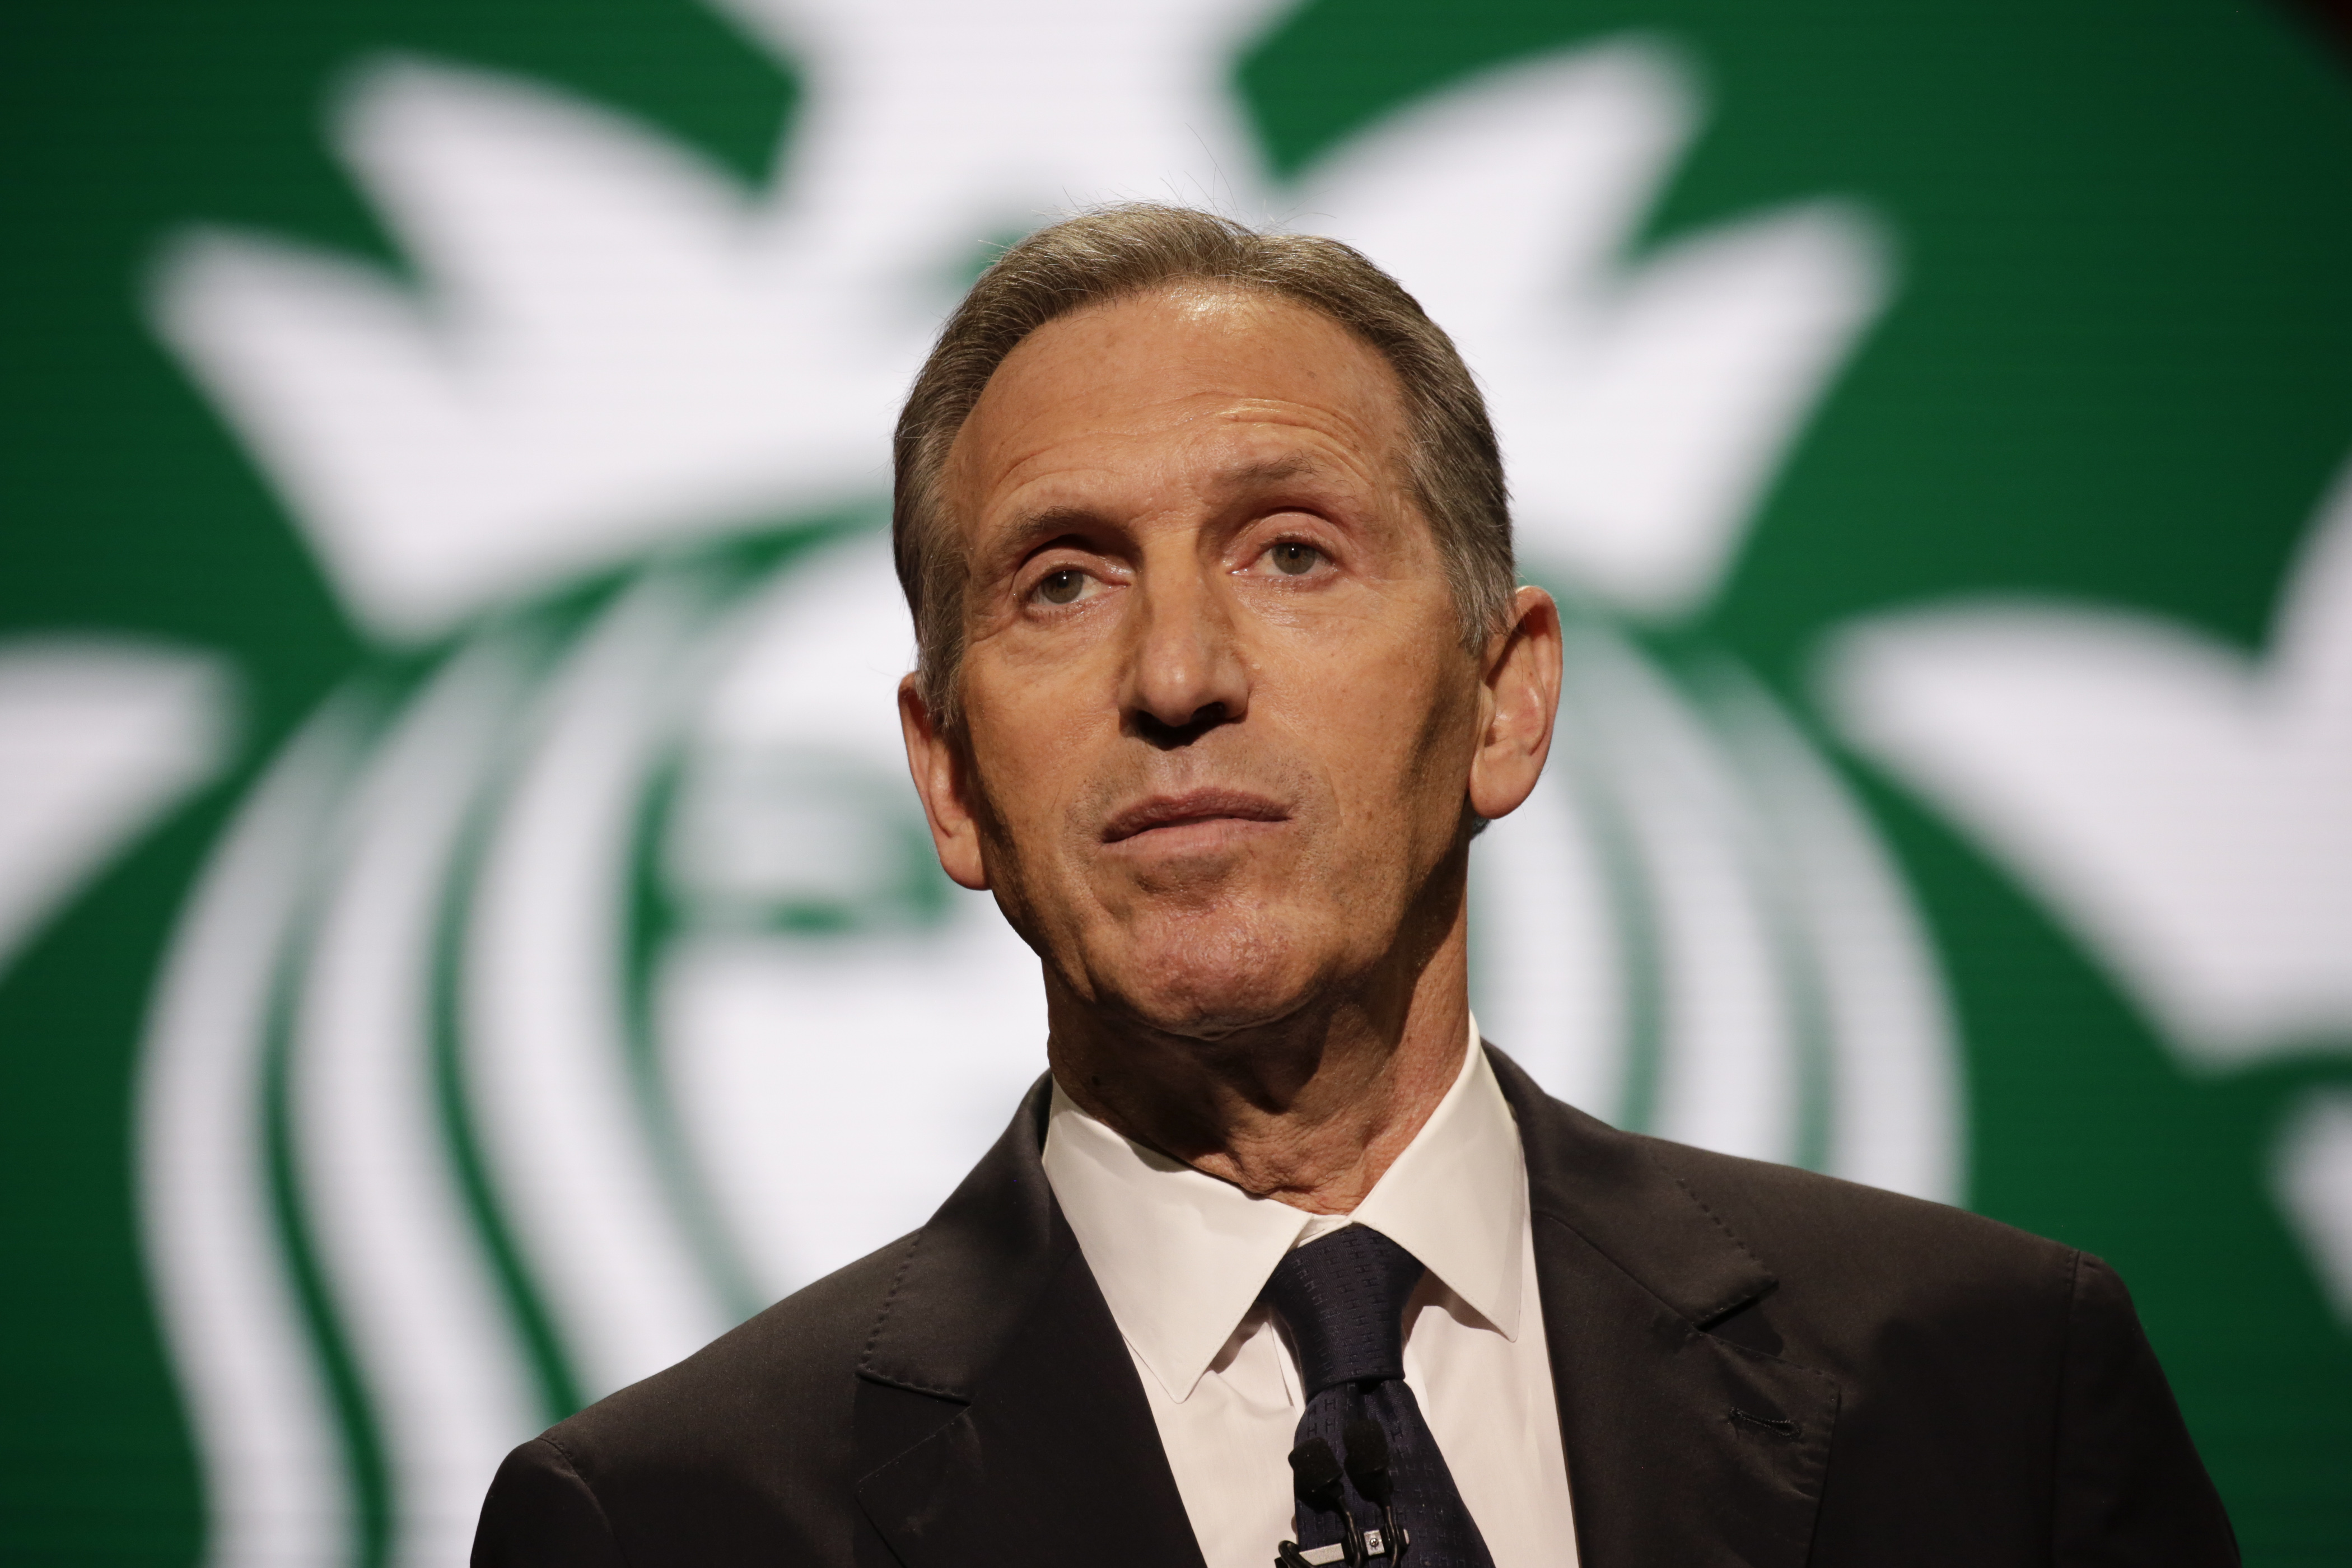 Starbucks Chairman and CEO Howard Schultz speaks at the annual meeting of shareholders in Seattle, Washington on March 22, 2017. Jason Redmond—AFP/Getty Images